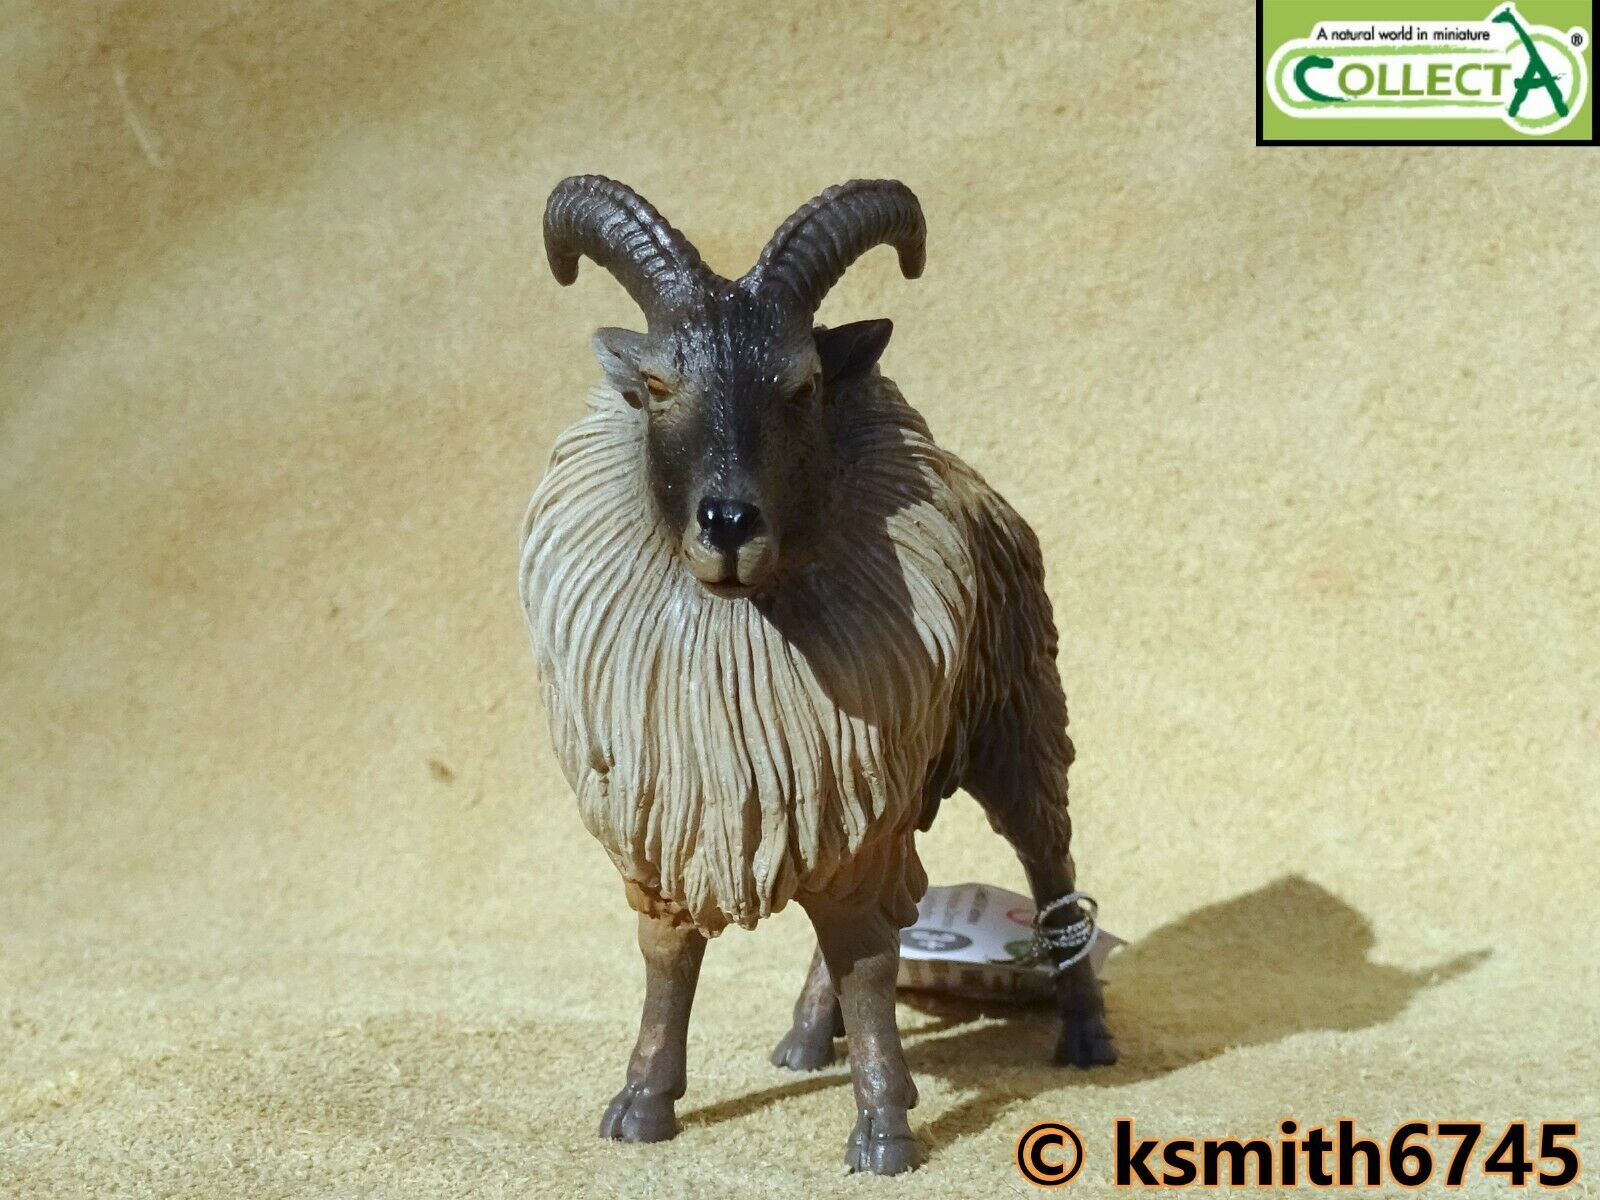 NEW CollectA HIMALAYAN TAHR solid plastic toy wild zoo animal Asian goat